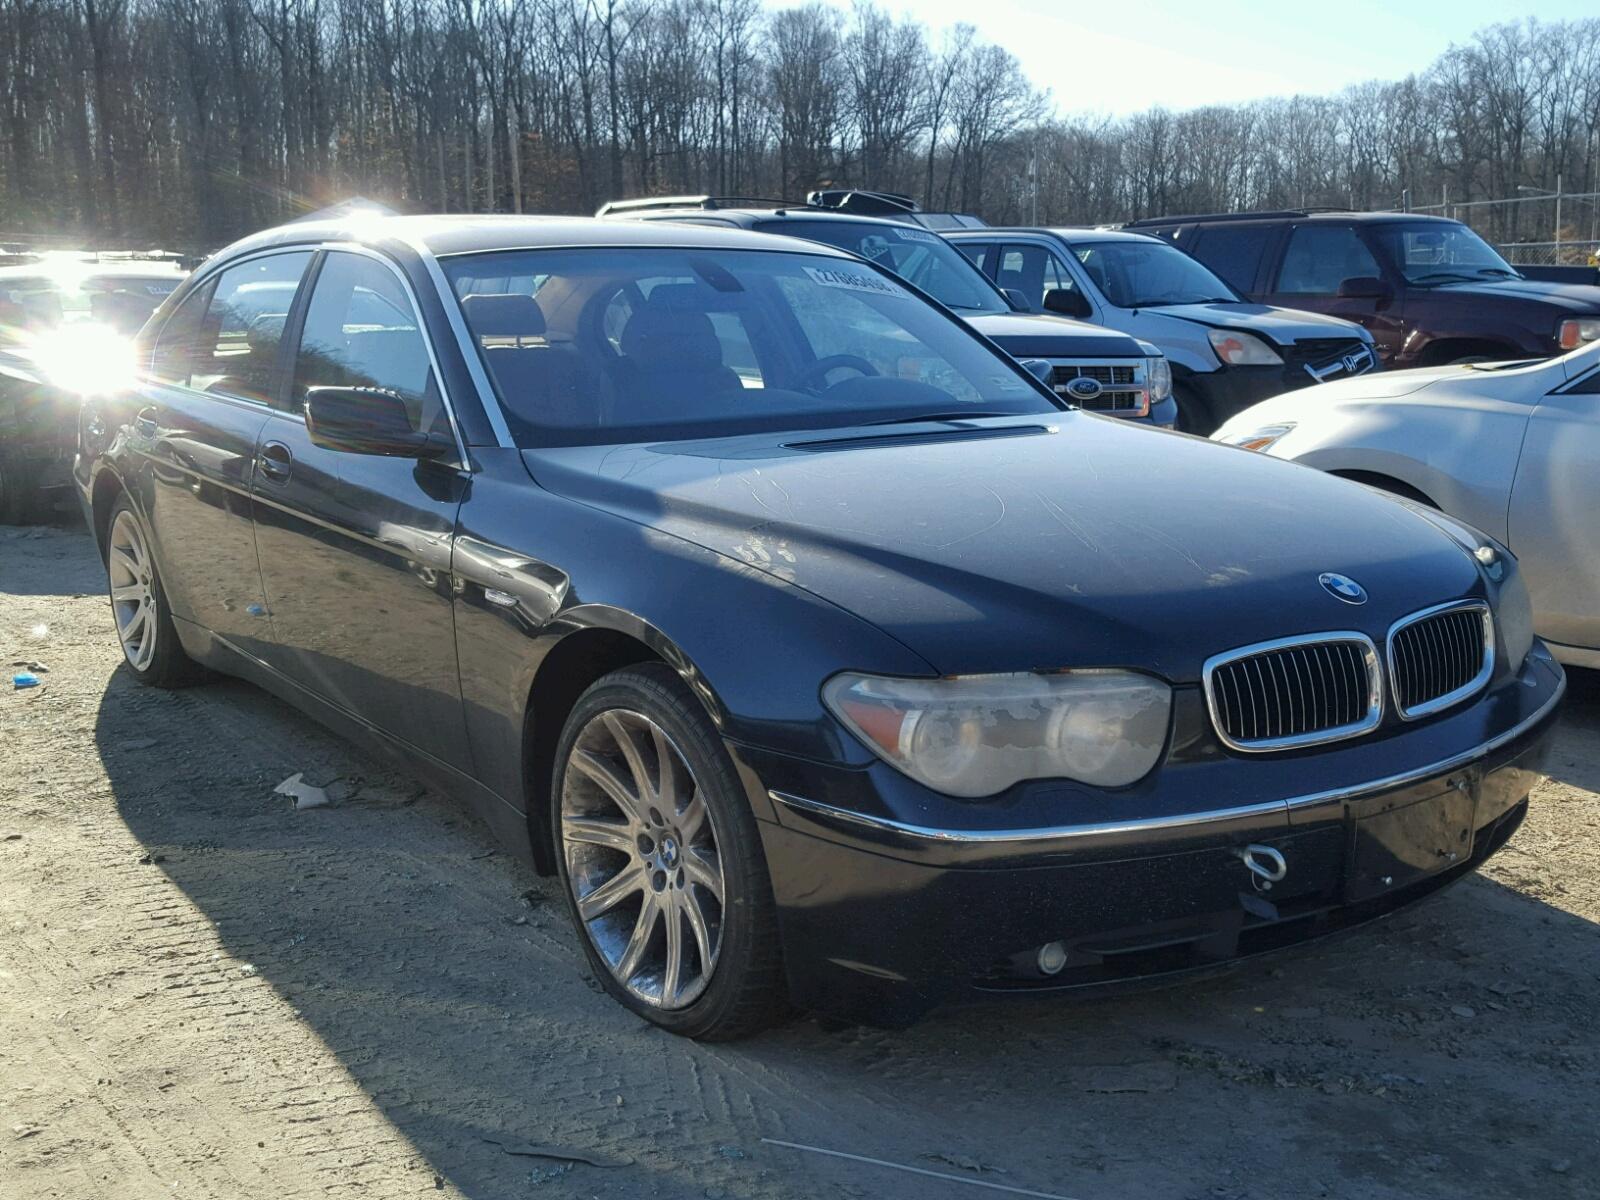 Auto Auction Ended On Vin Wbagn63494ds47000 2004 Bmw 745